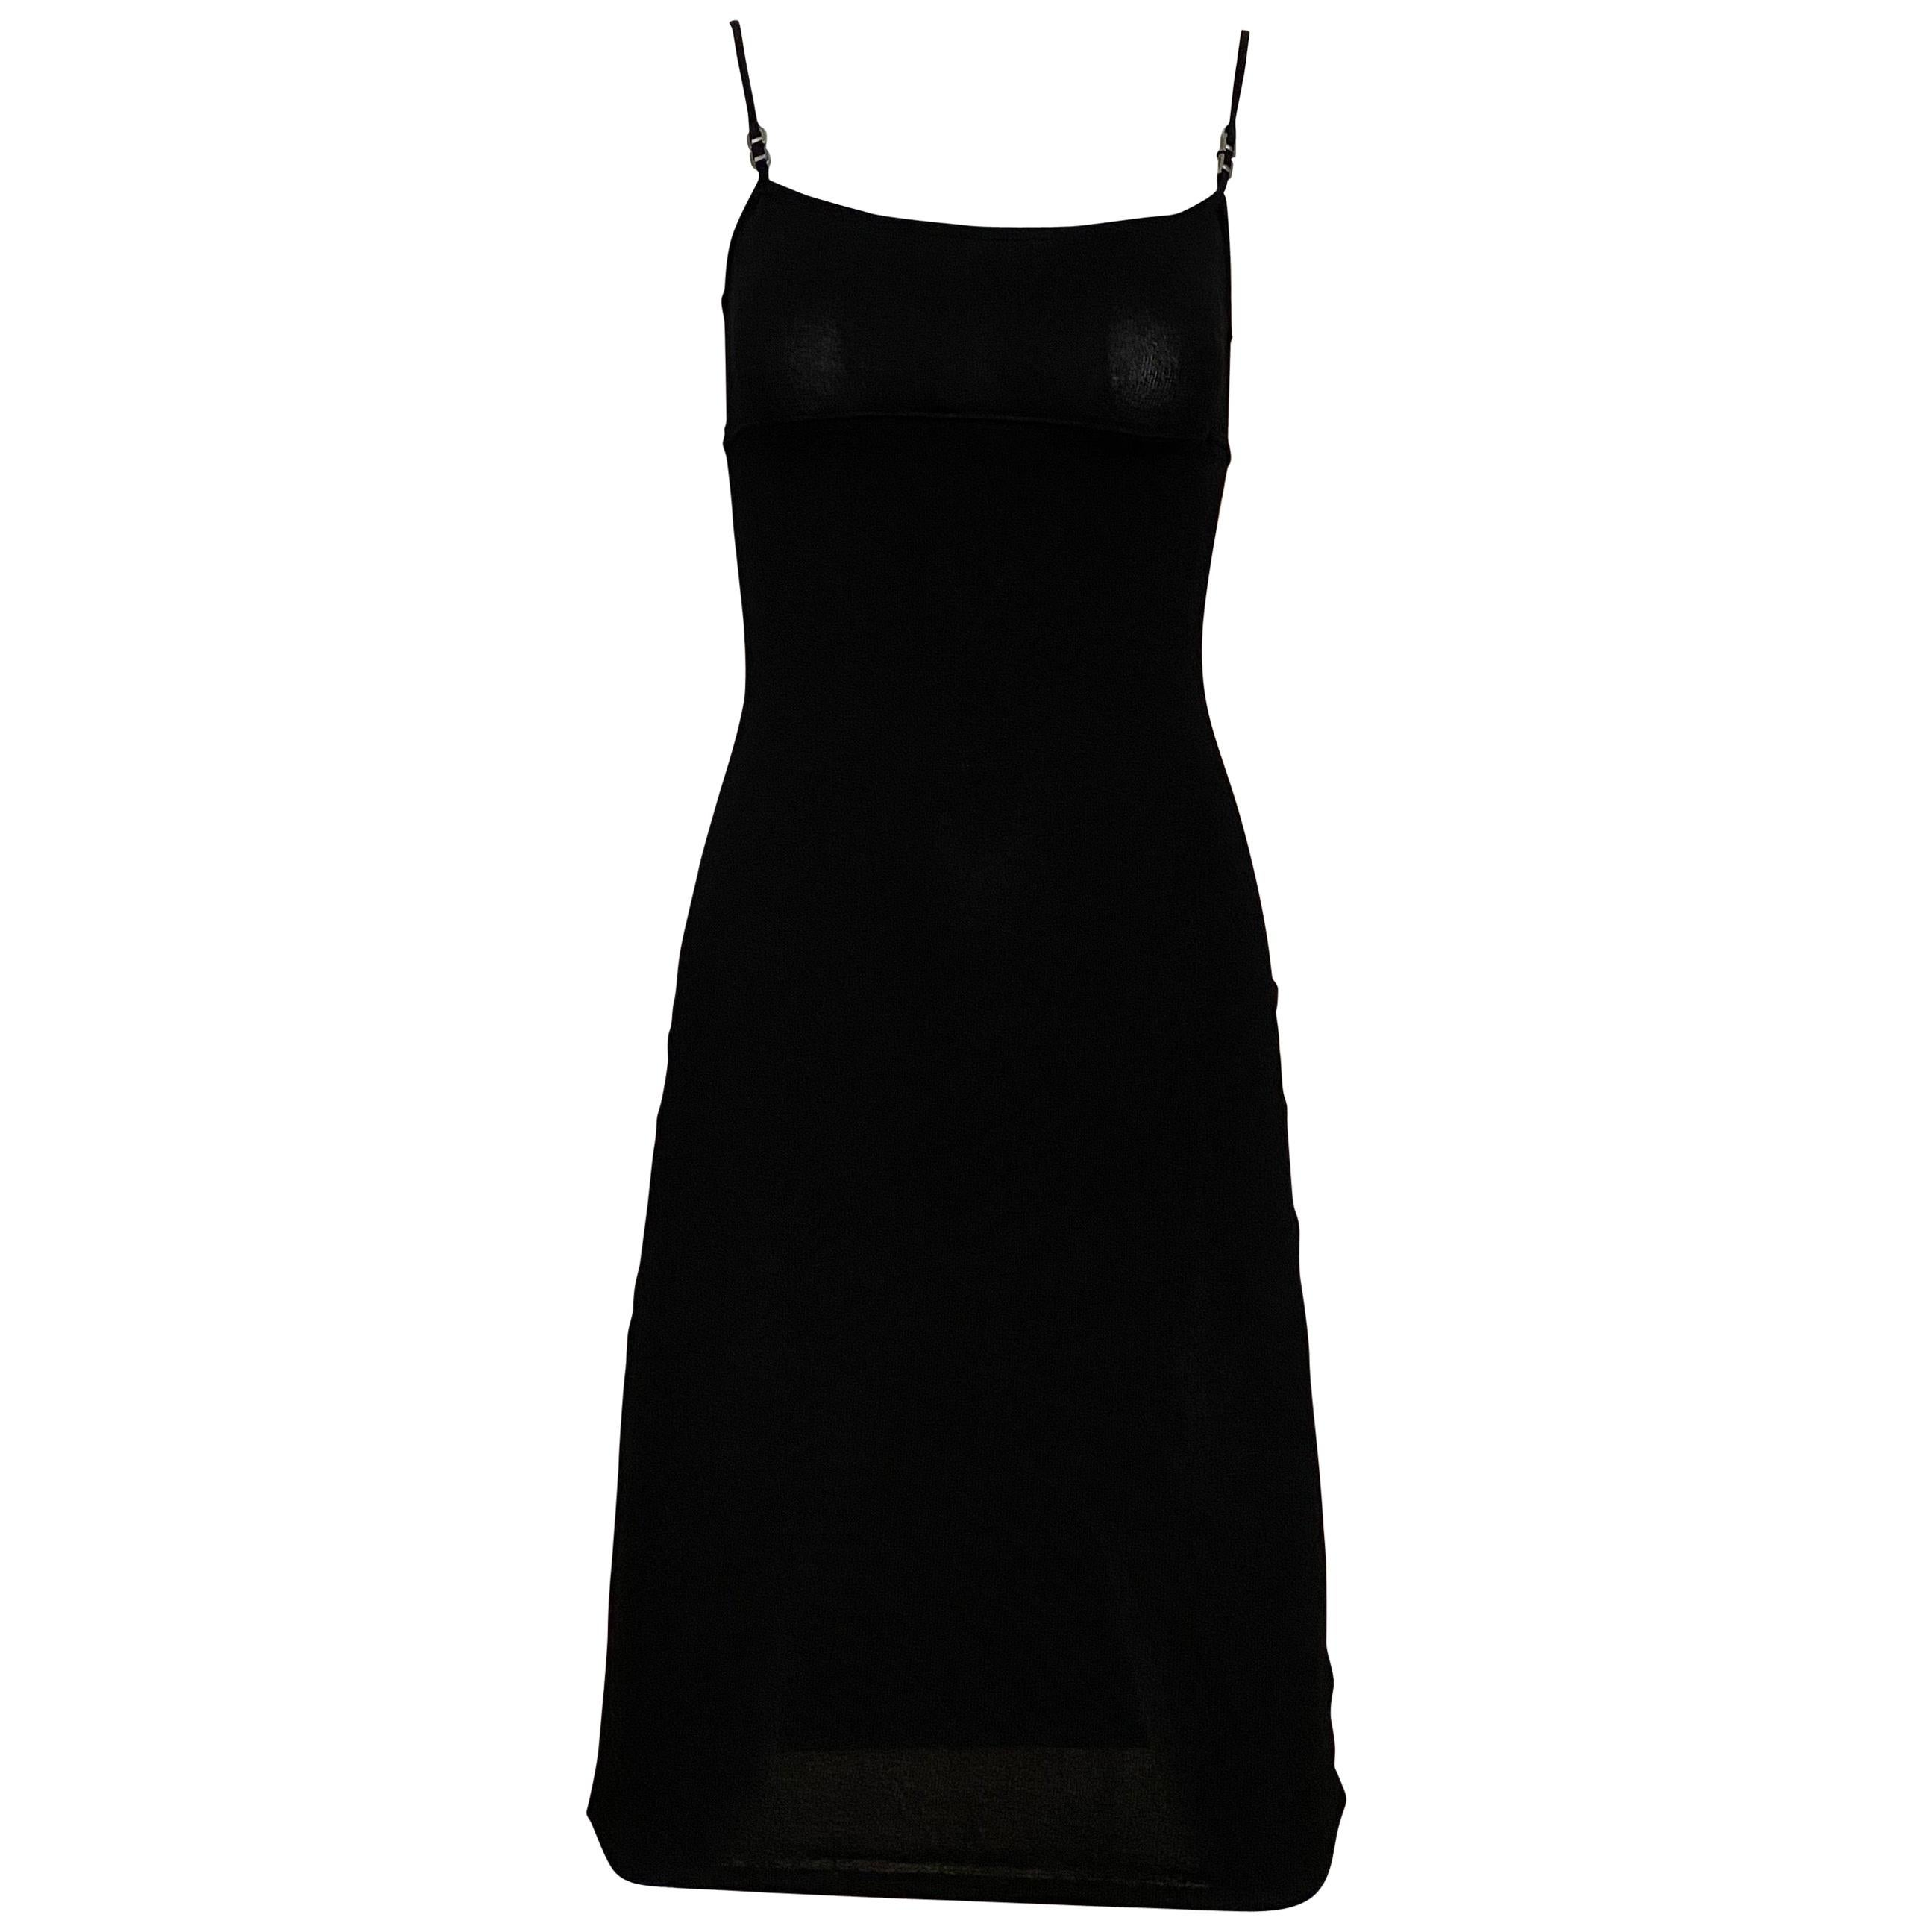 Gucci by Tom Ford Black Knit fitted Spaghetti Strap Dress